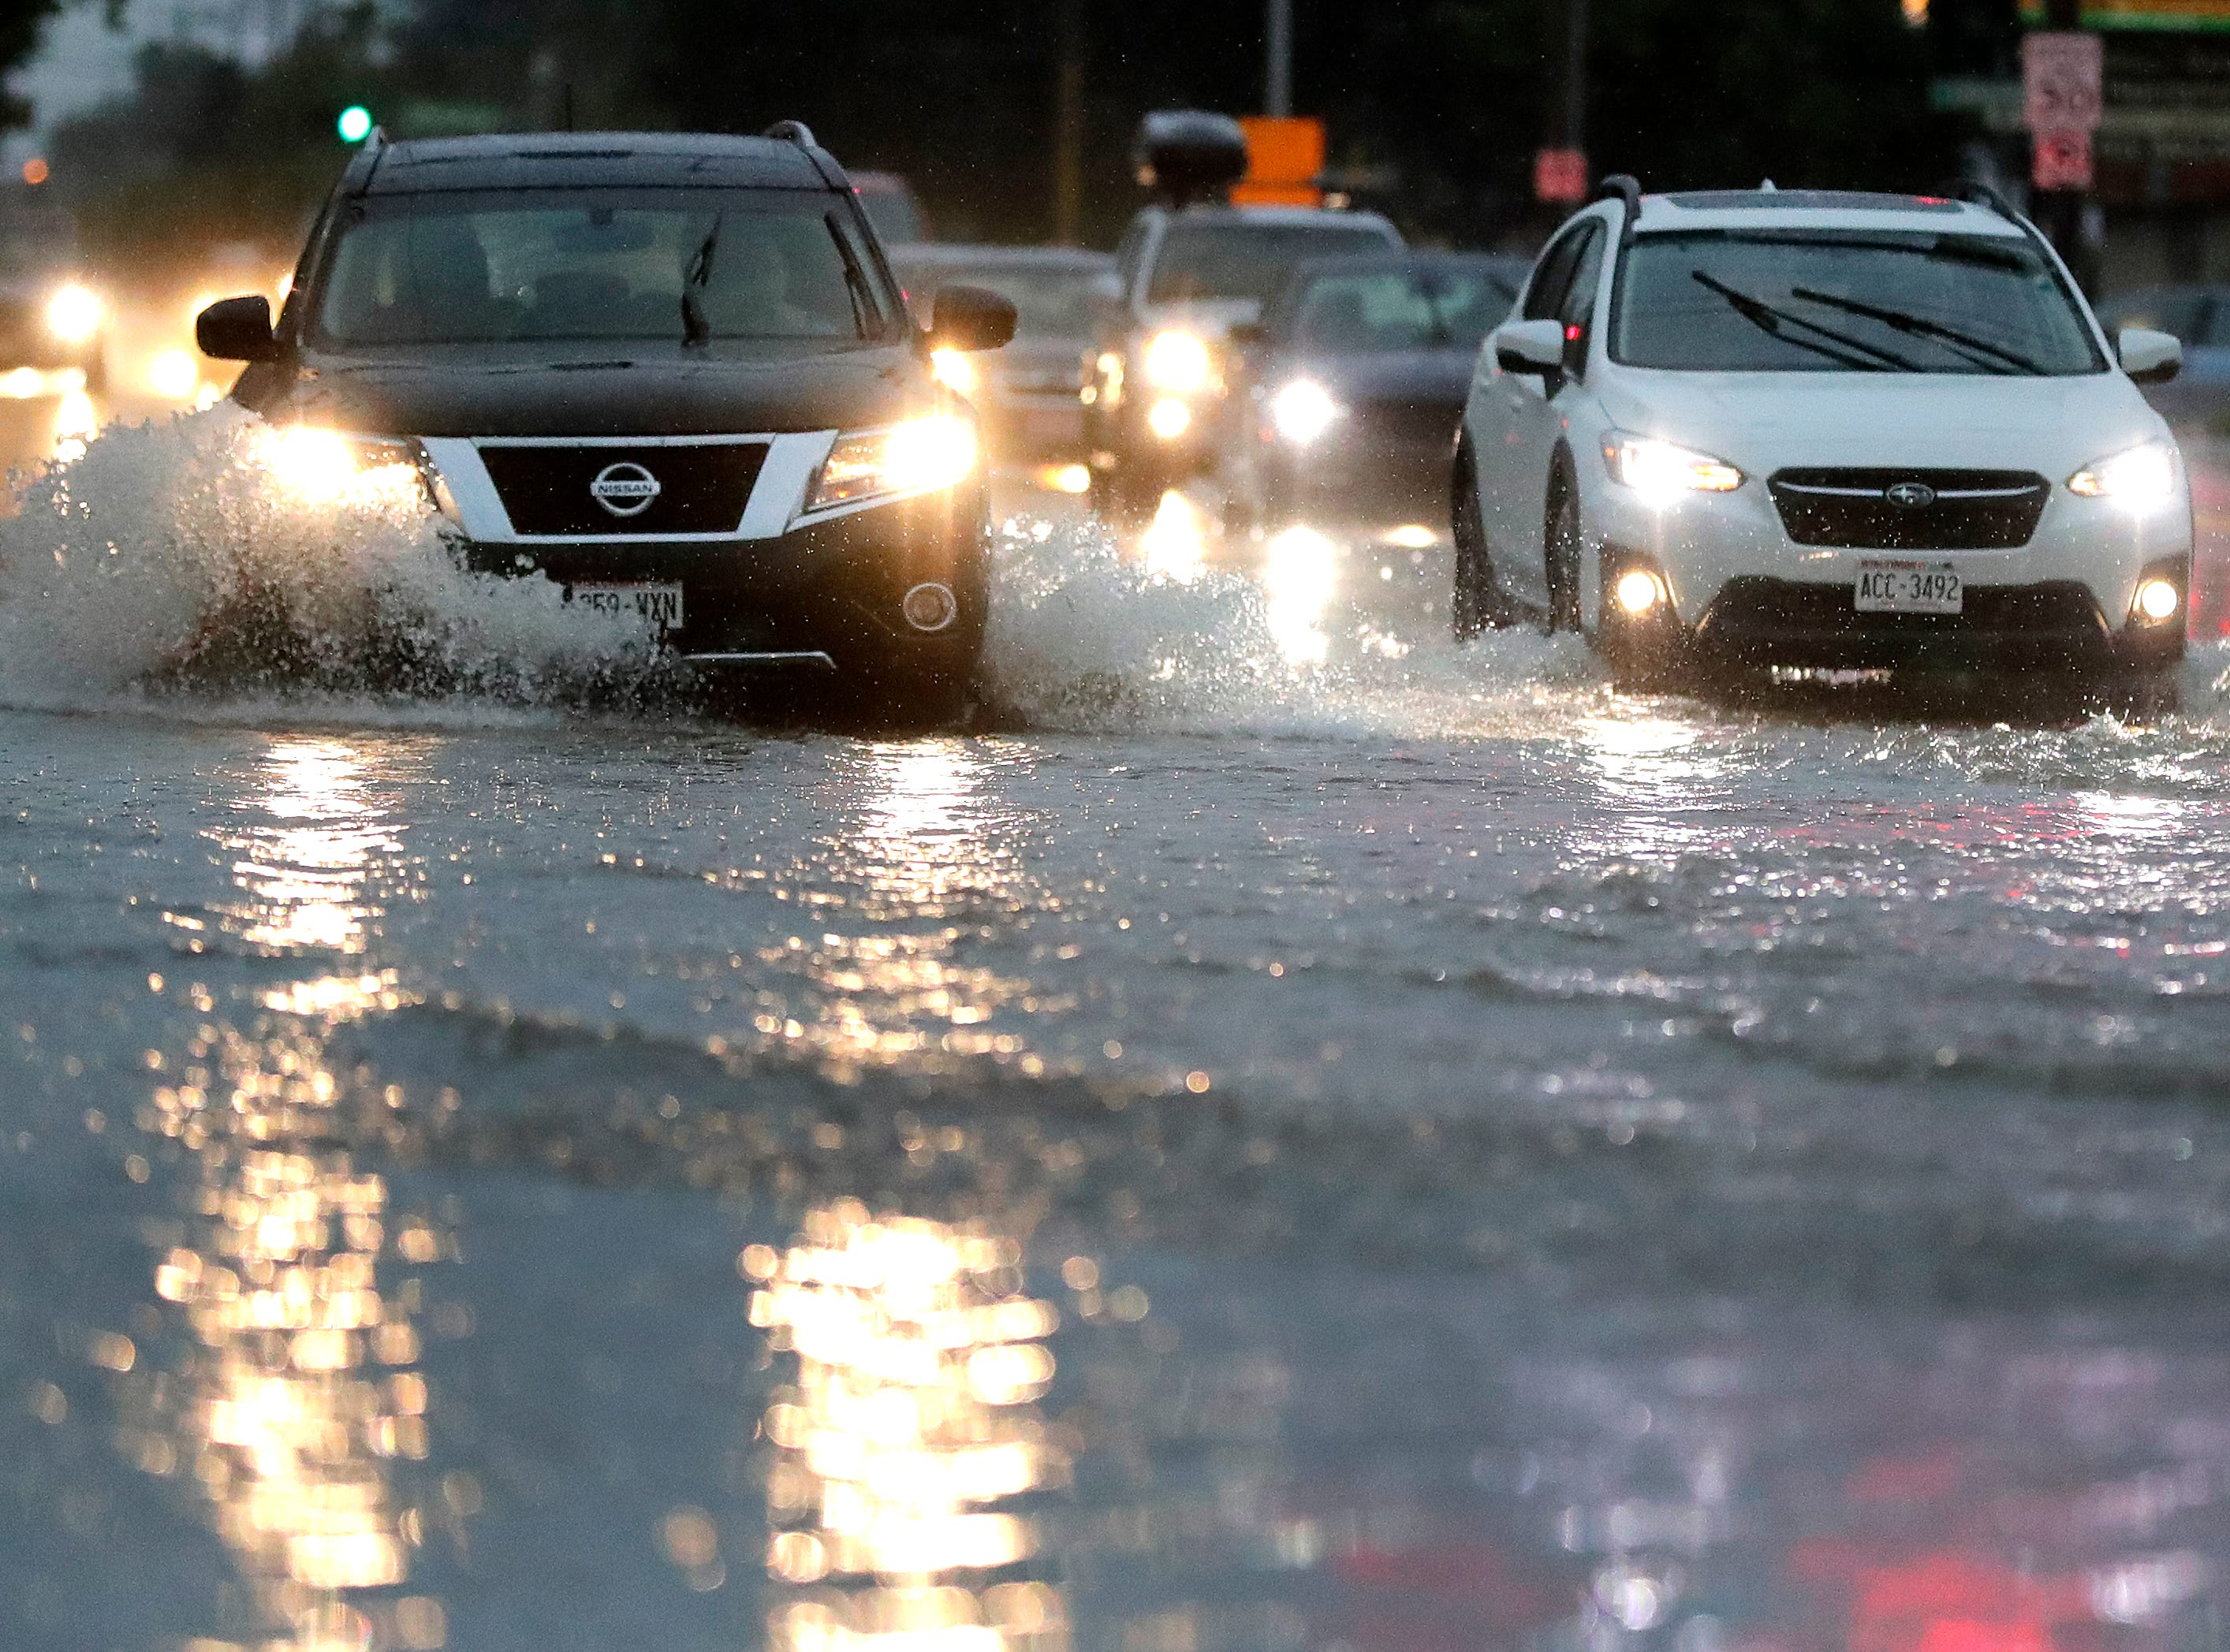 Record rainfall hit cities across Wisconsin in 2018